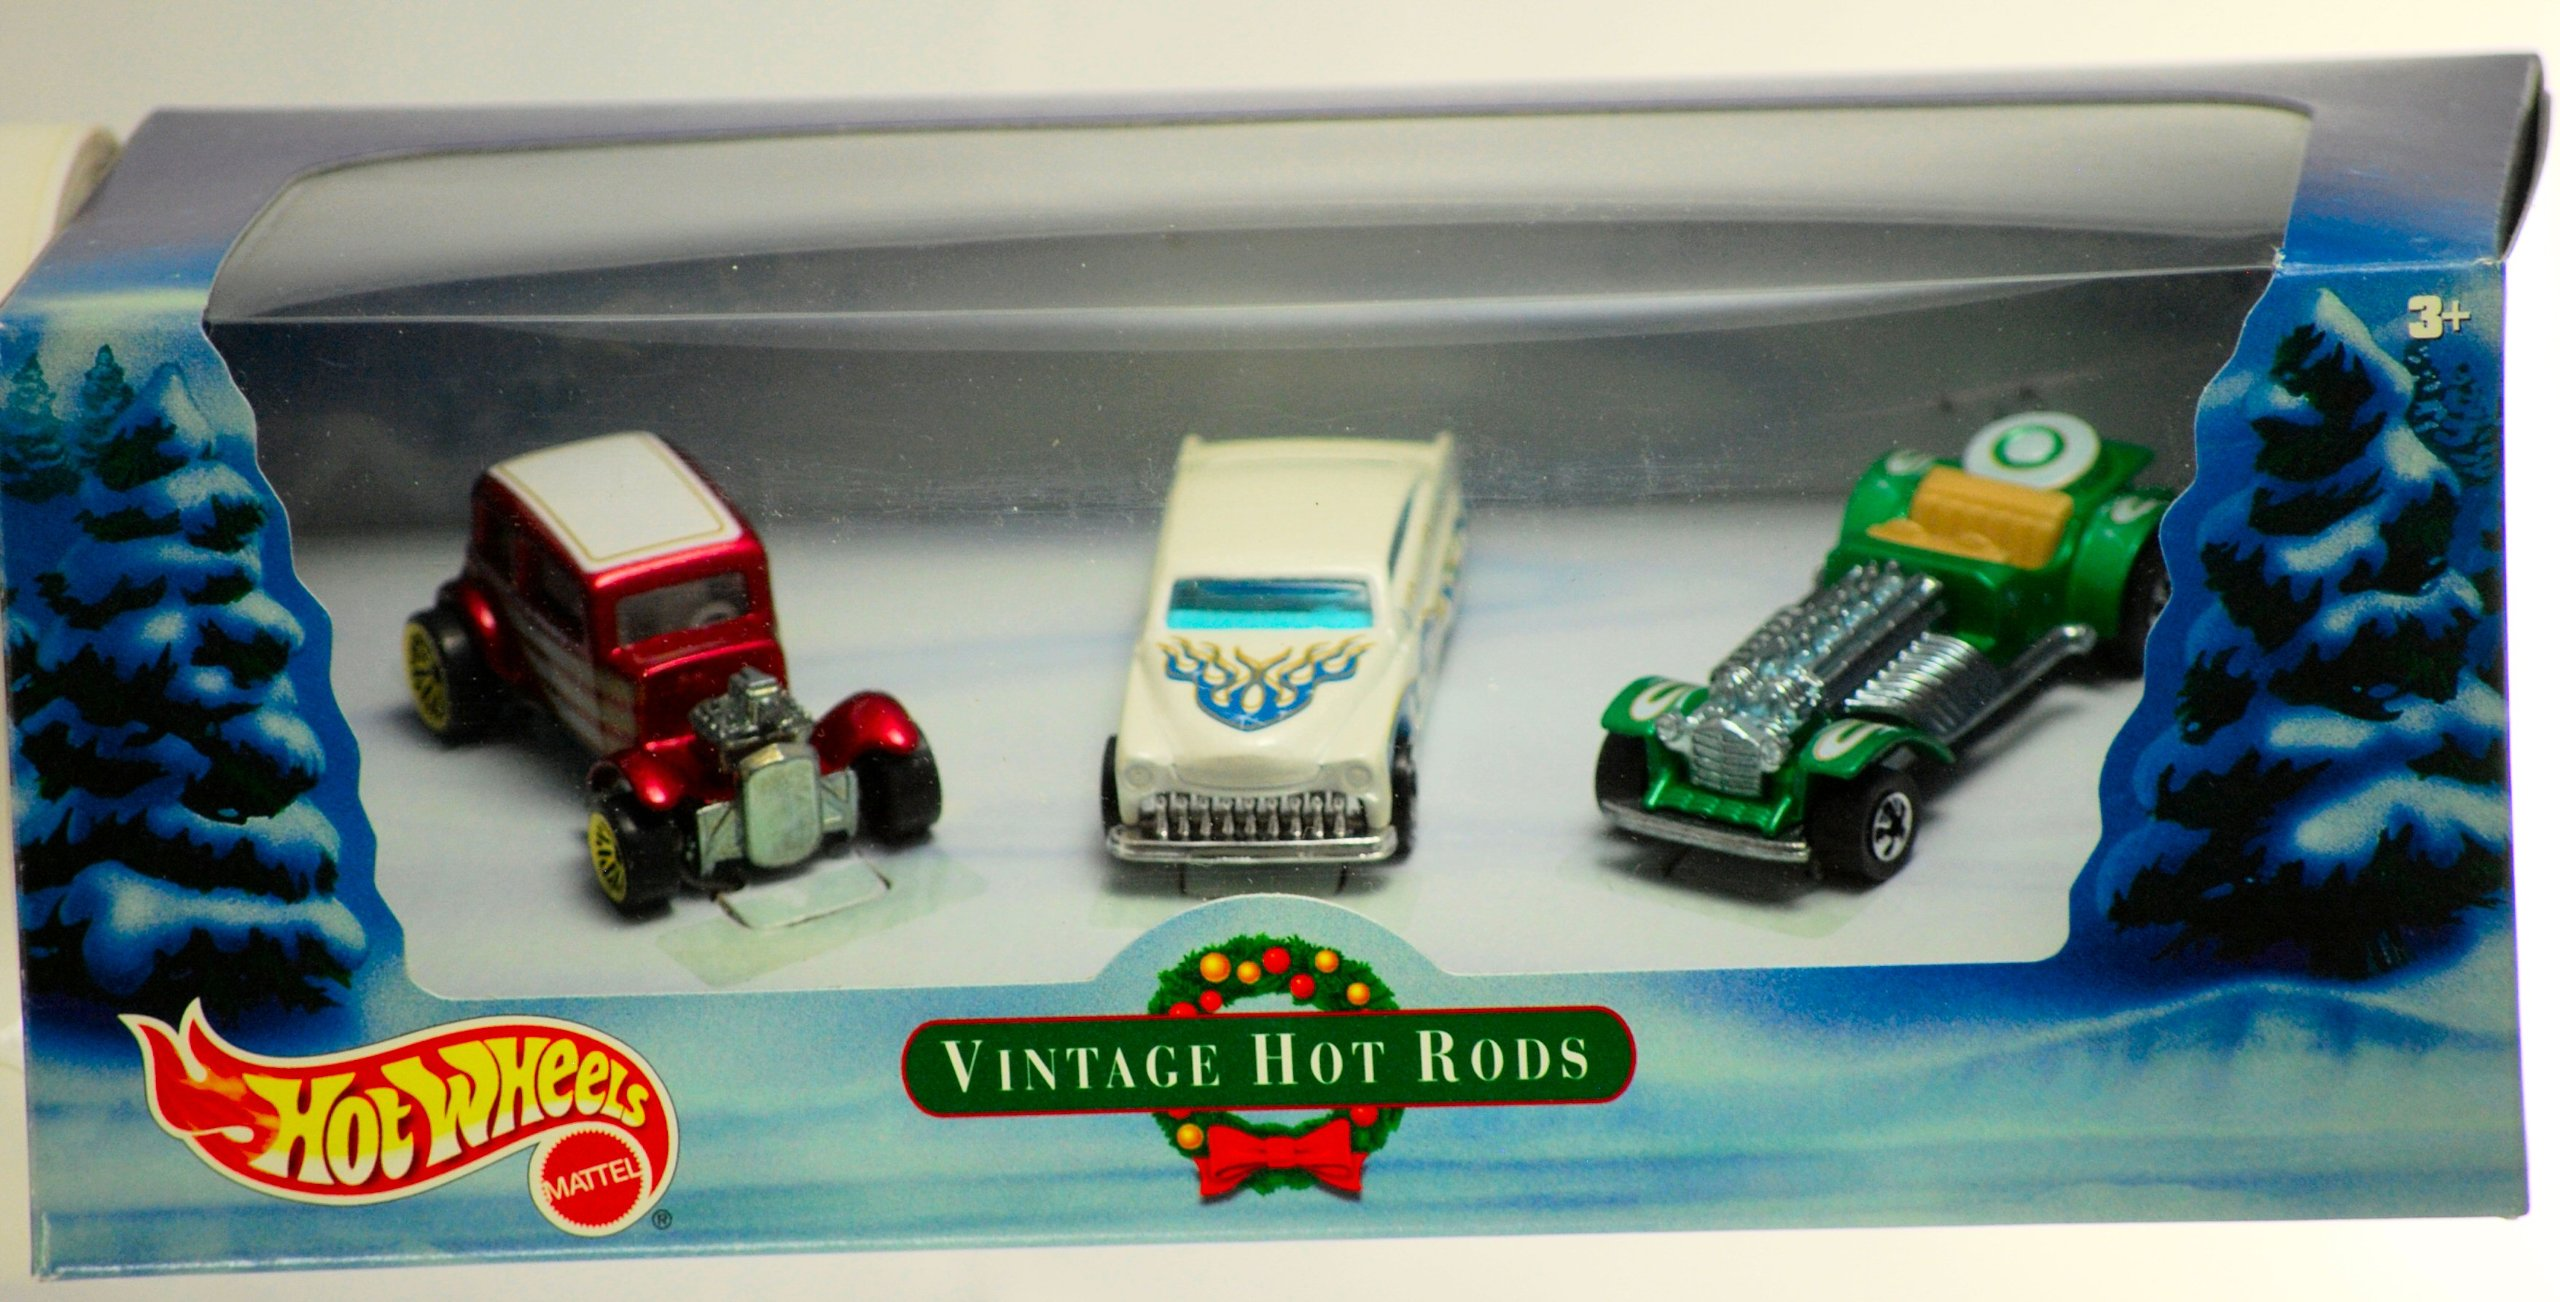 Hot Wheels 2000 - Mattel Vintage Hot Rods - Holiday Set - Ford Vicky / Purple Passion / Sweet 16 - Box & Cars Mint - New - Collectible - Out of Production